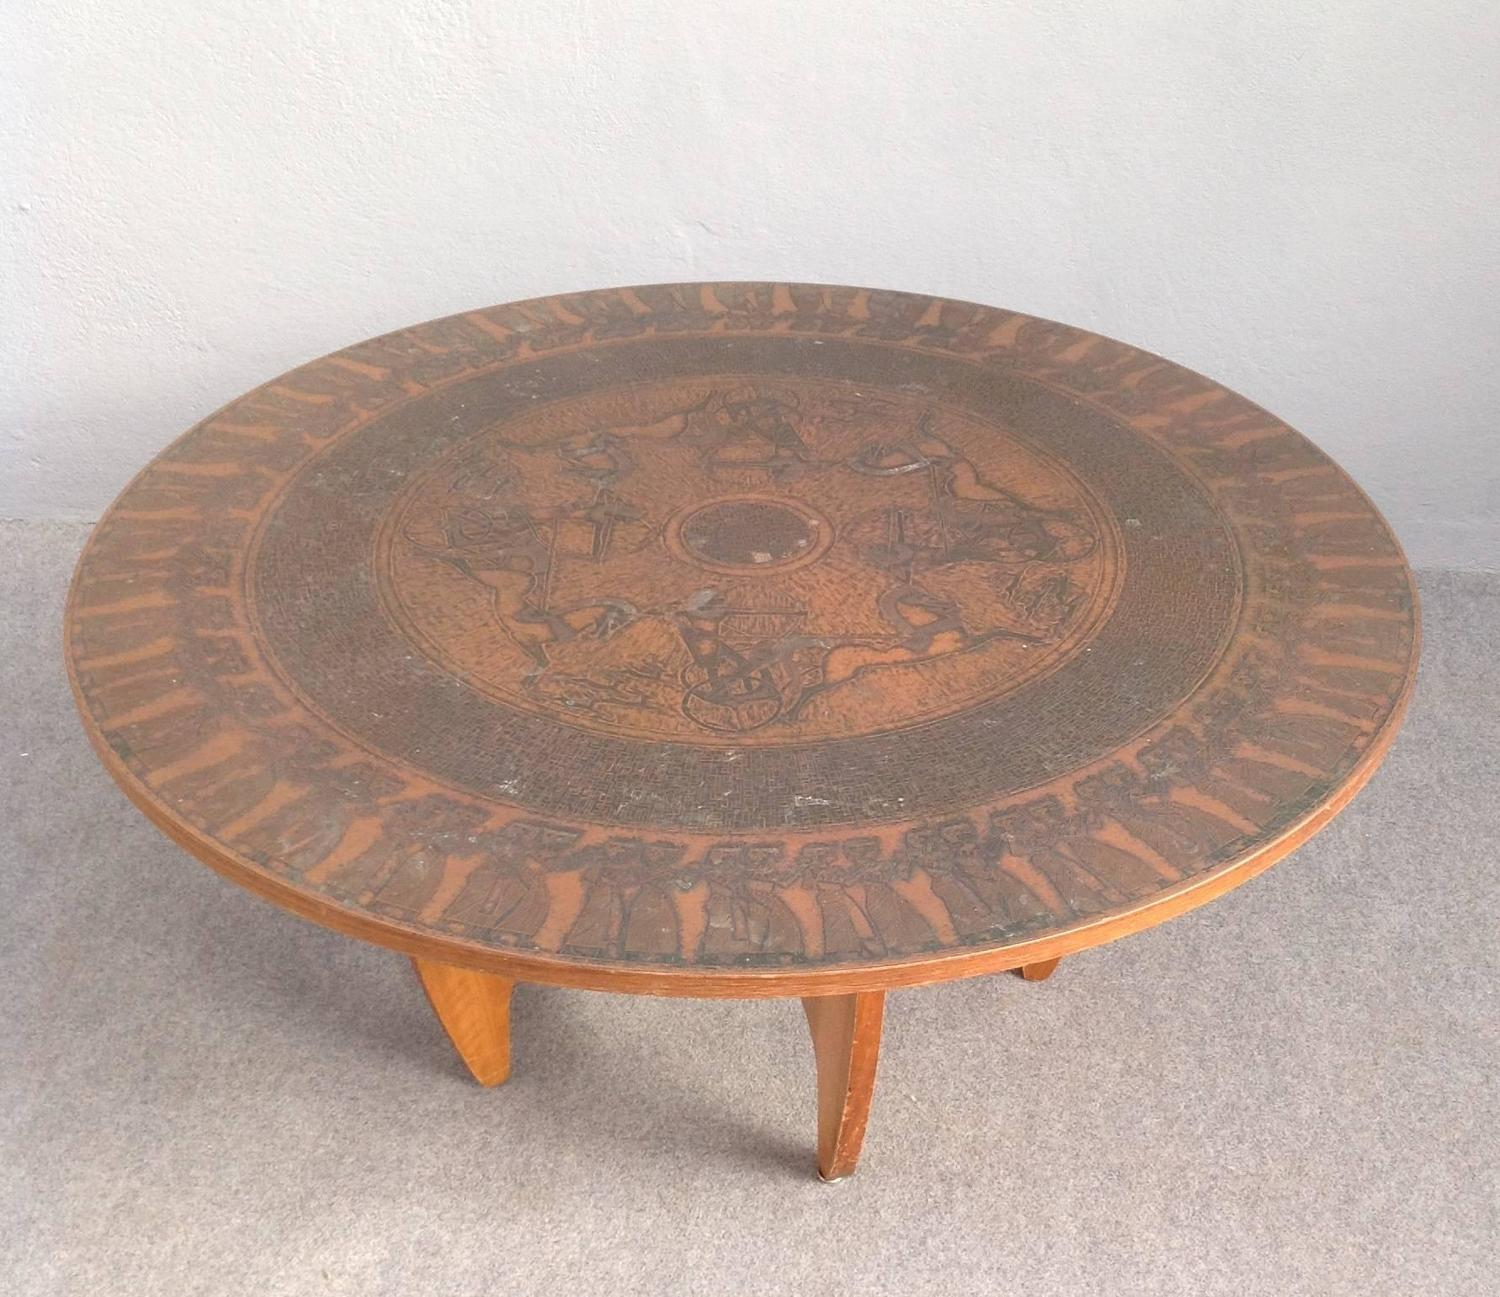 Round 3 Round Coffee Table Made Of Metal Cm ø80x23h: Round Copper Leaf Coffee Table For Sale At 1stdibs